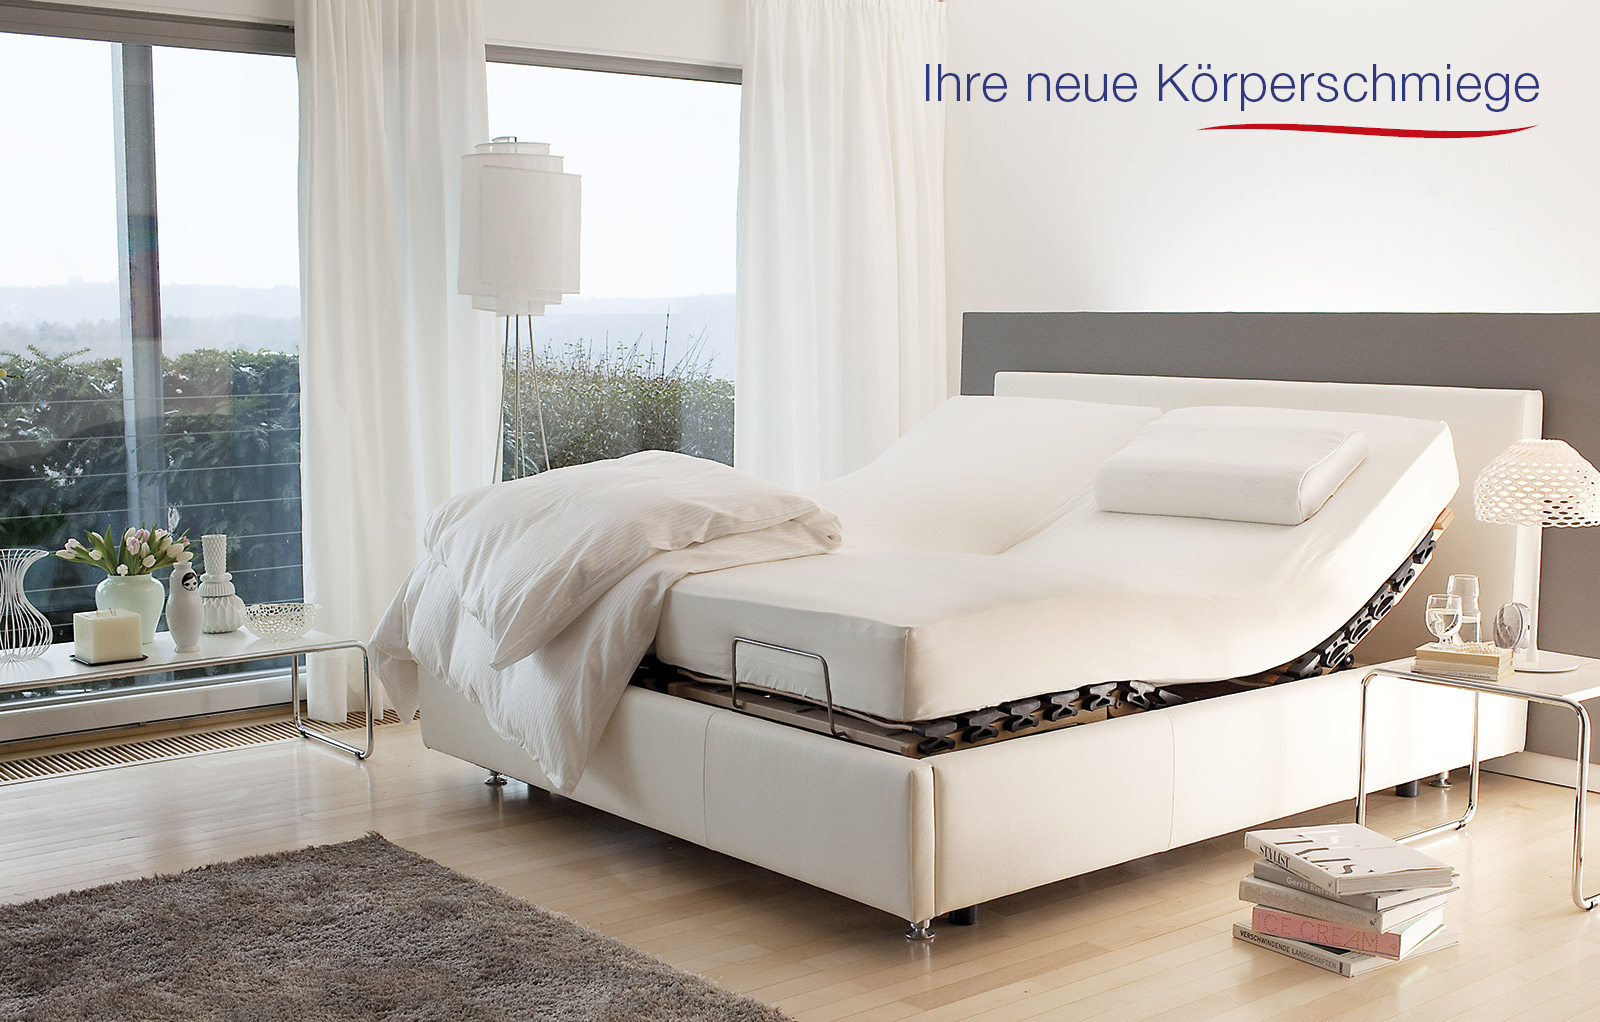 bettenmanufaktur und stofftr ume betten bubert und. Black Bedroom Furniture Sets. Home Design Ideas